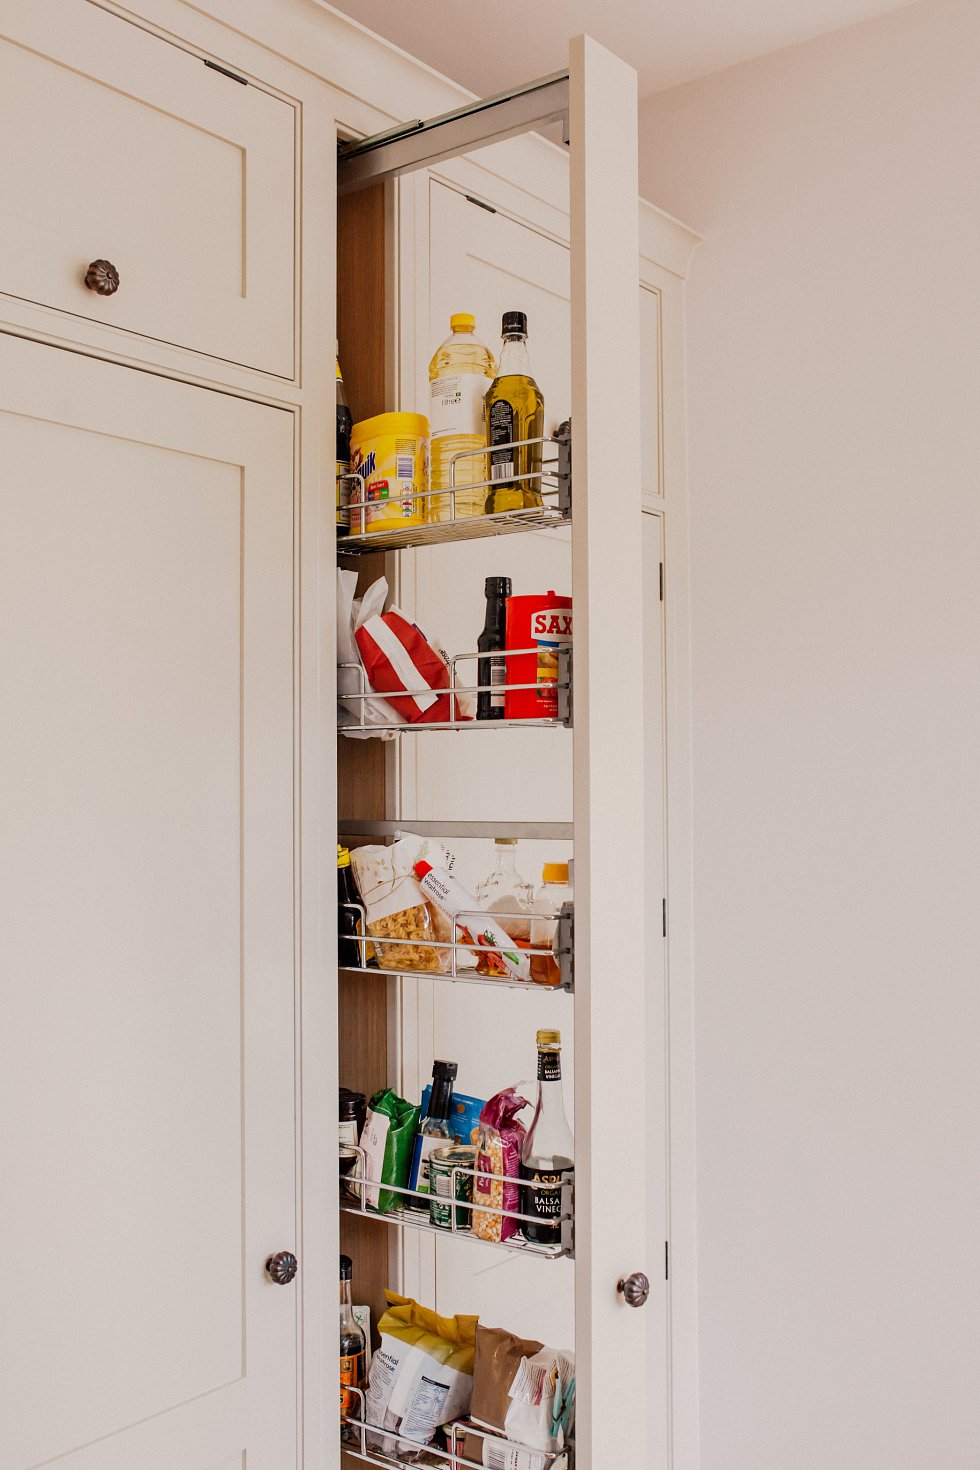 Kitchen Storage - And How To Approach It